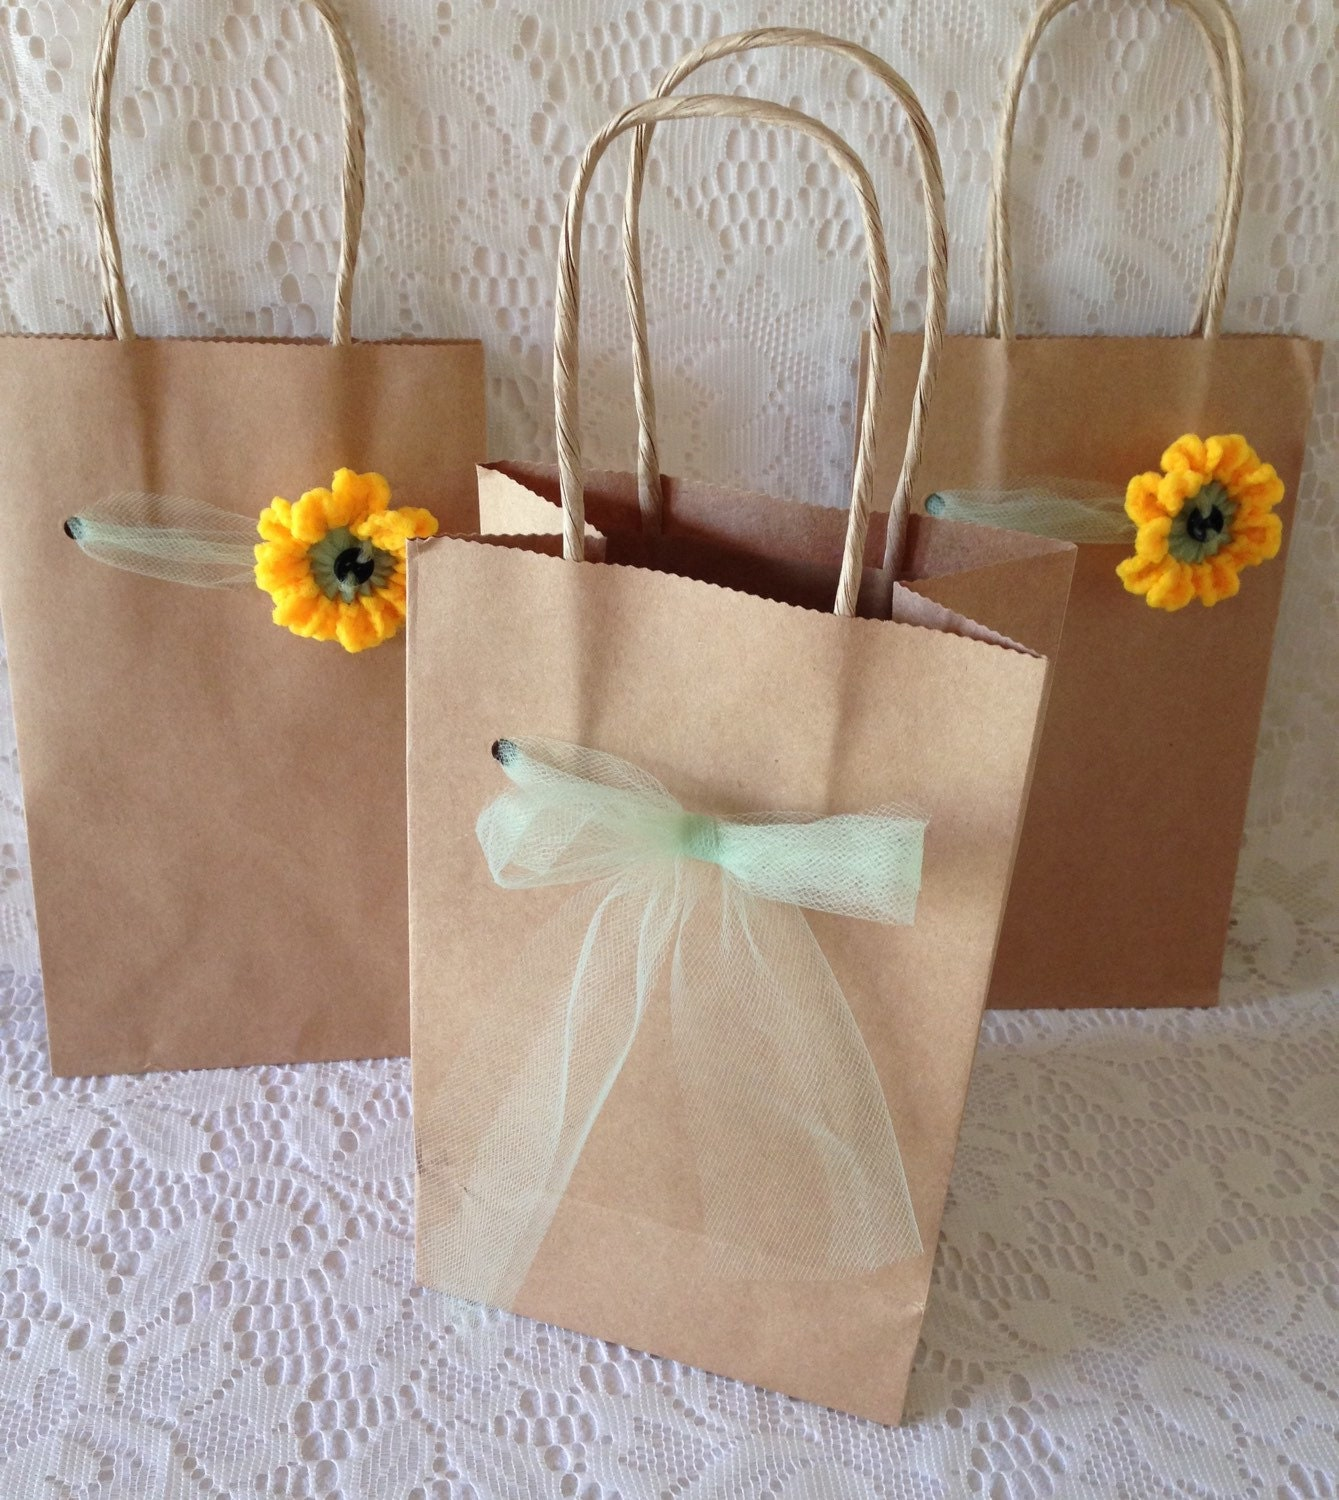 Sunflower Gift Bags 3 Kraft Brown Paper Gift Bags Decorated